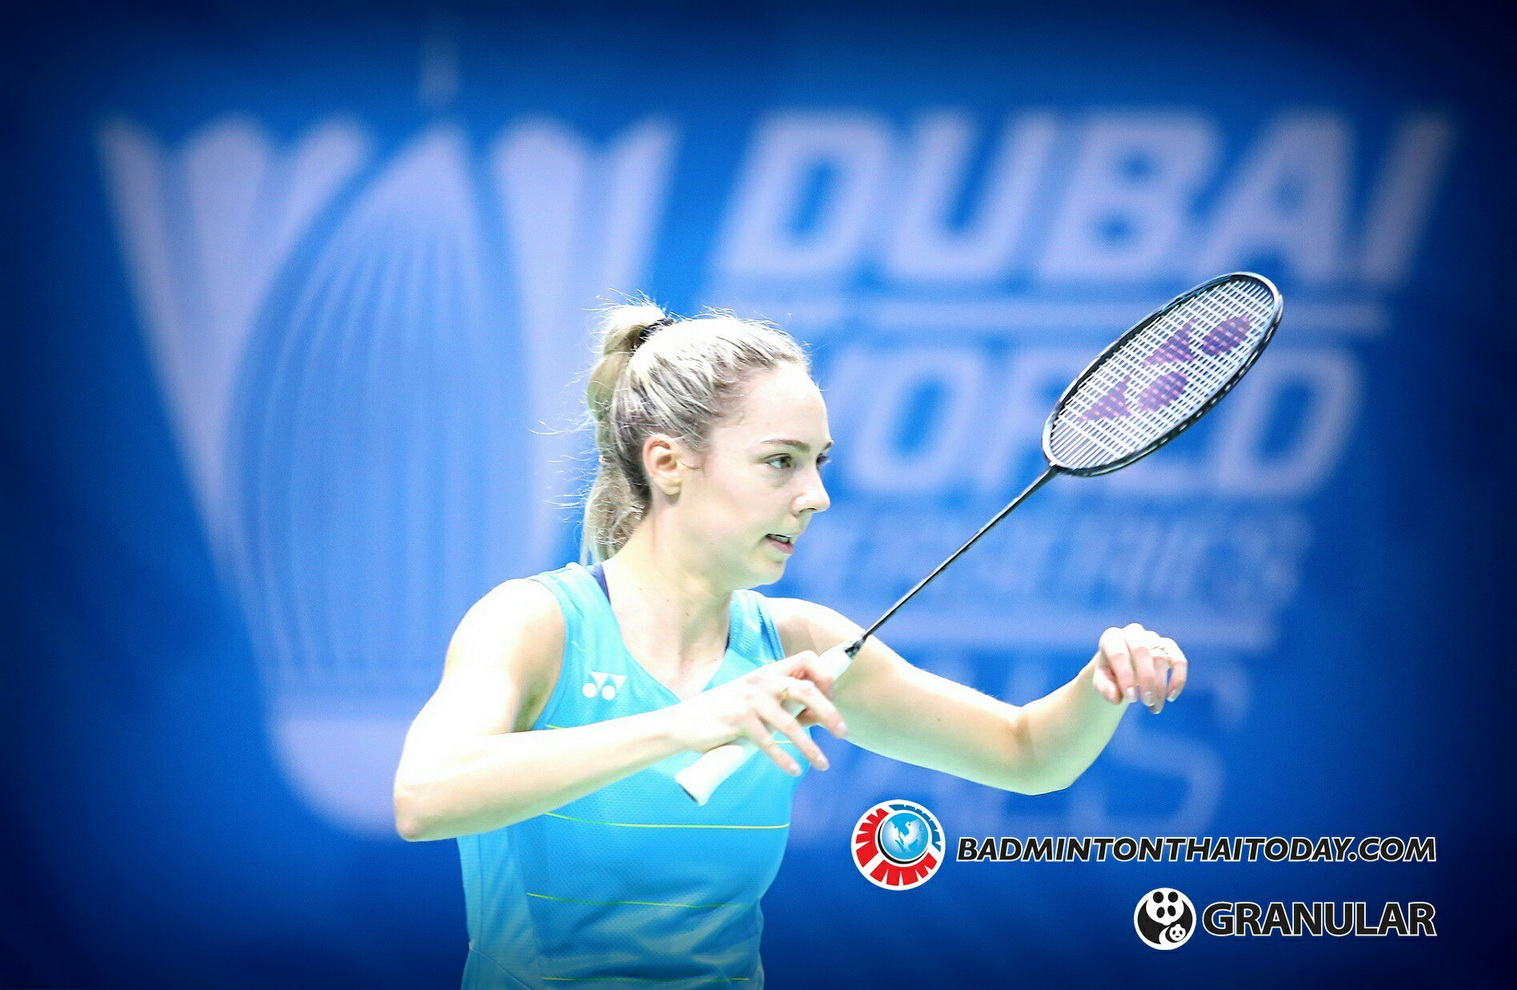 Chris Adcock - Gabrielle Adcock@ Dubai World Superseries Final 2016 รูปภาพกีฬาแบดมินตัน